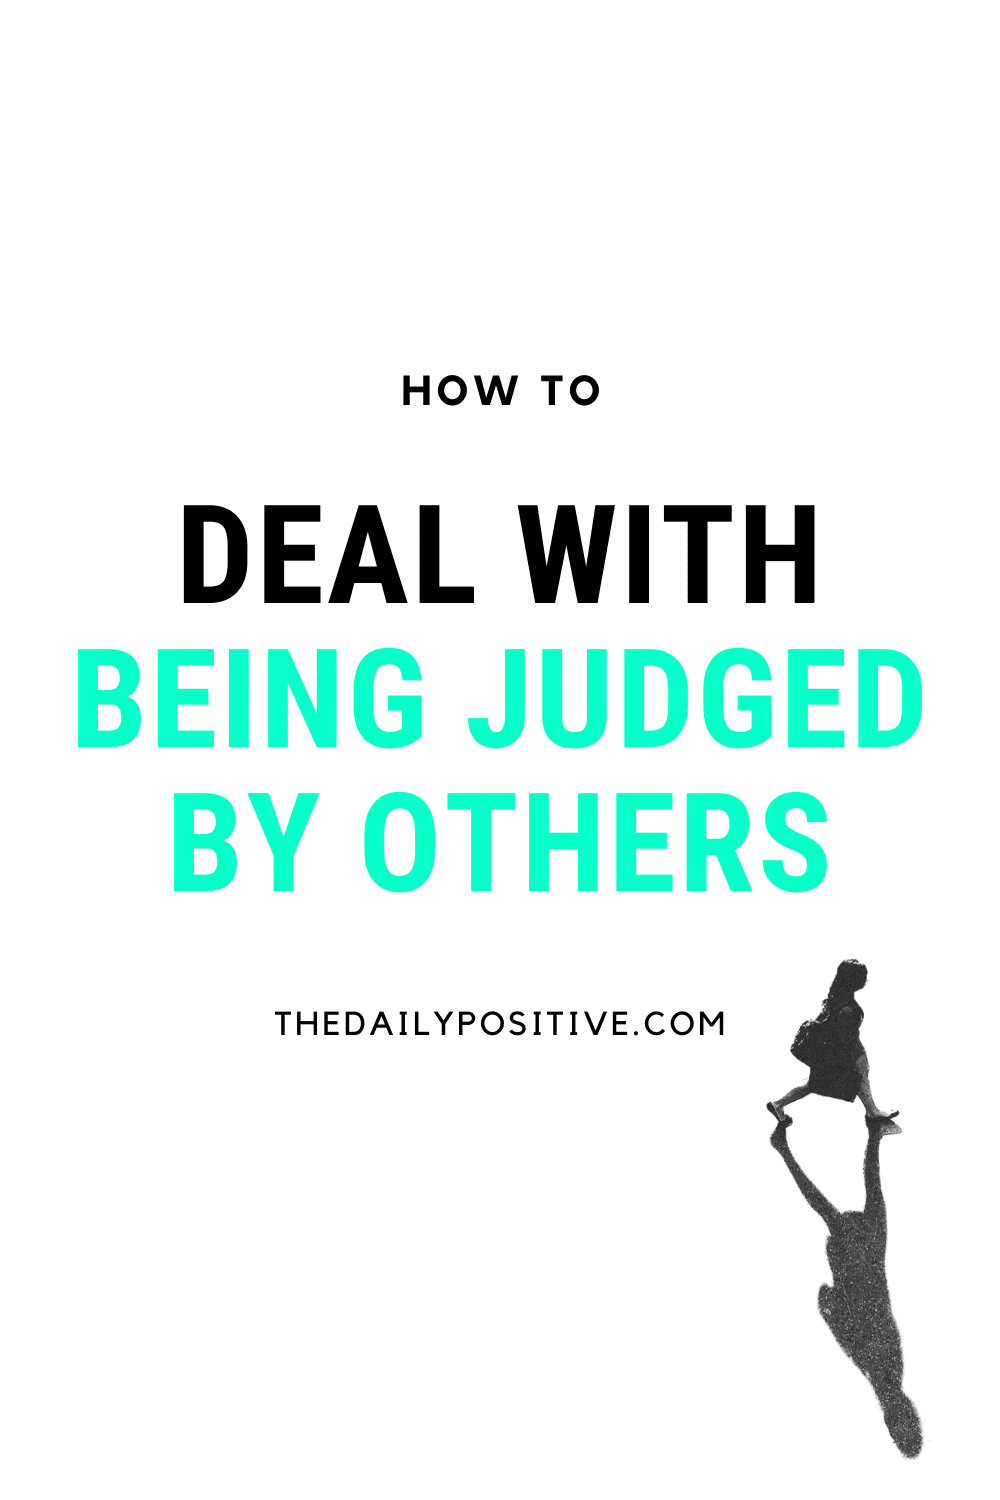 How to Deal with Being Judged by Others